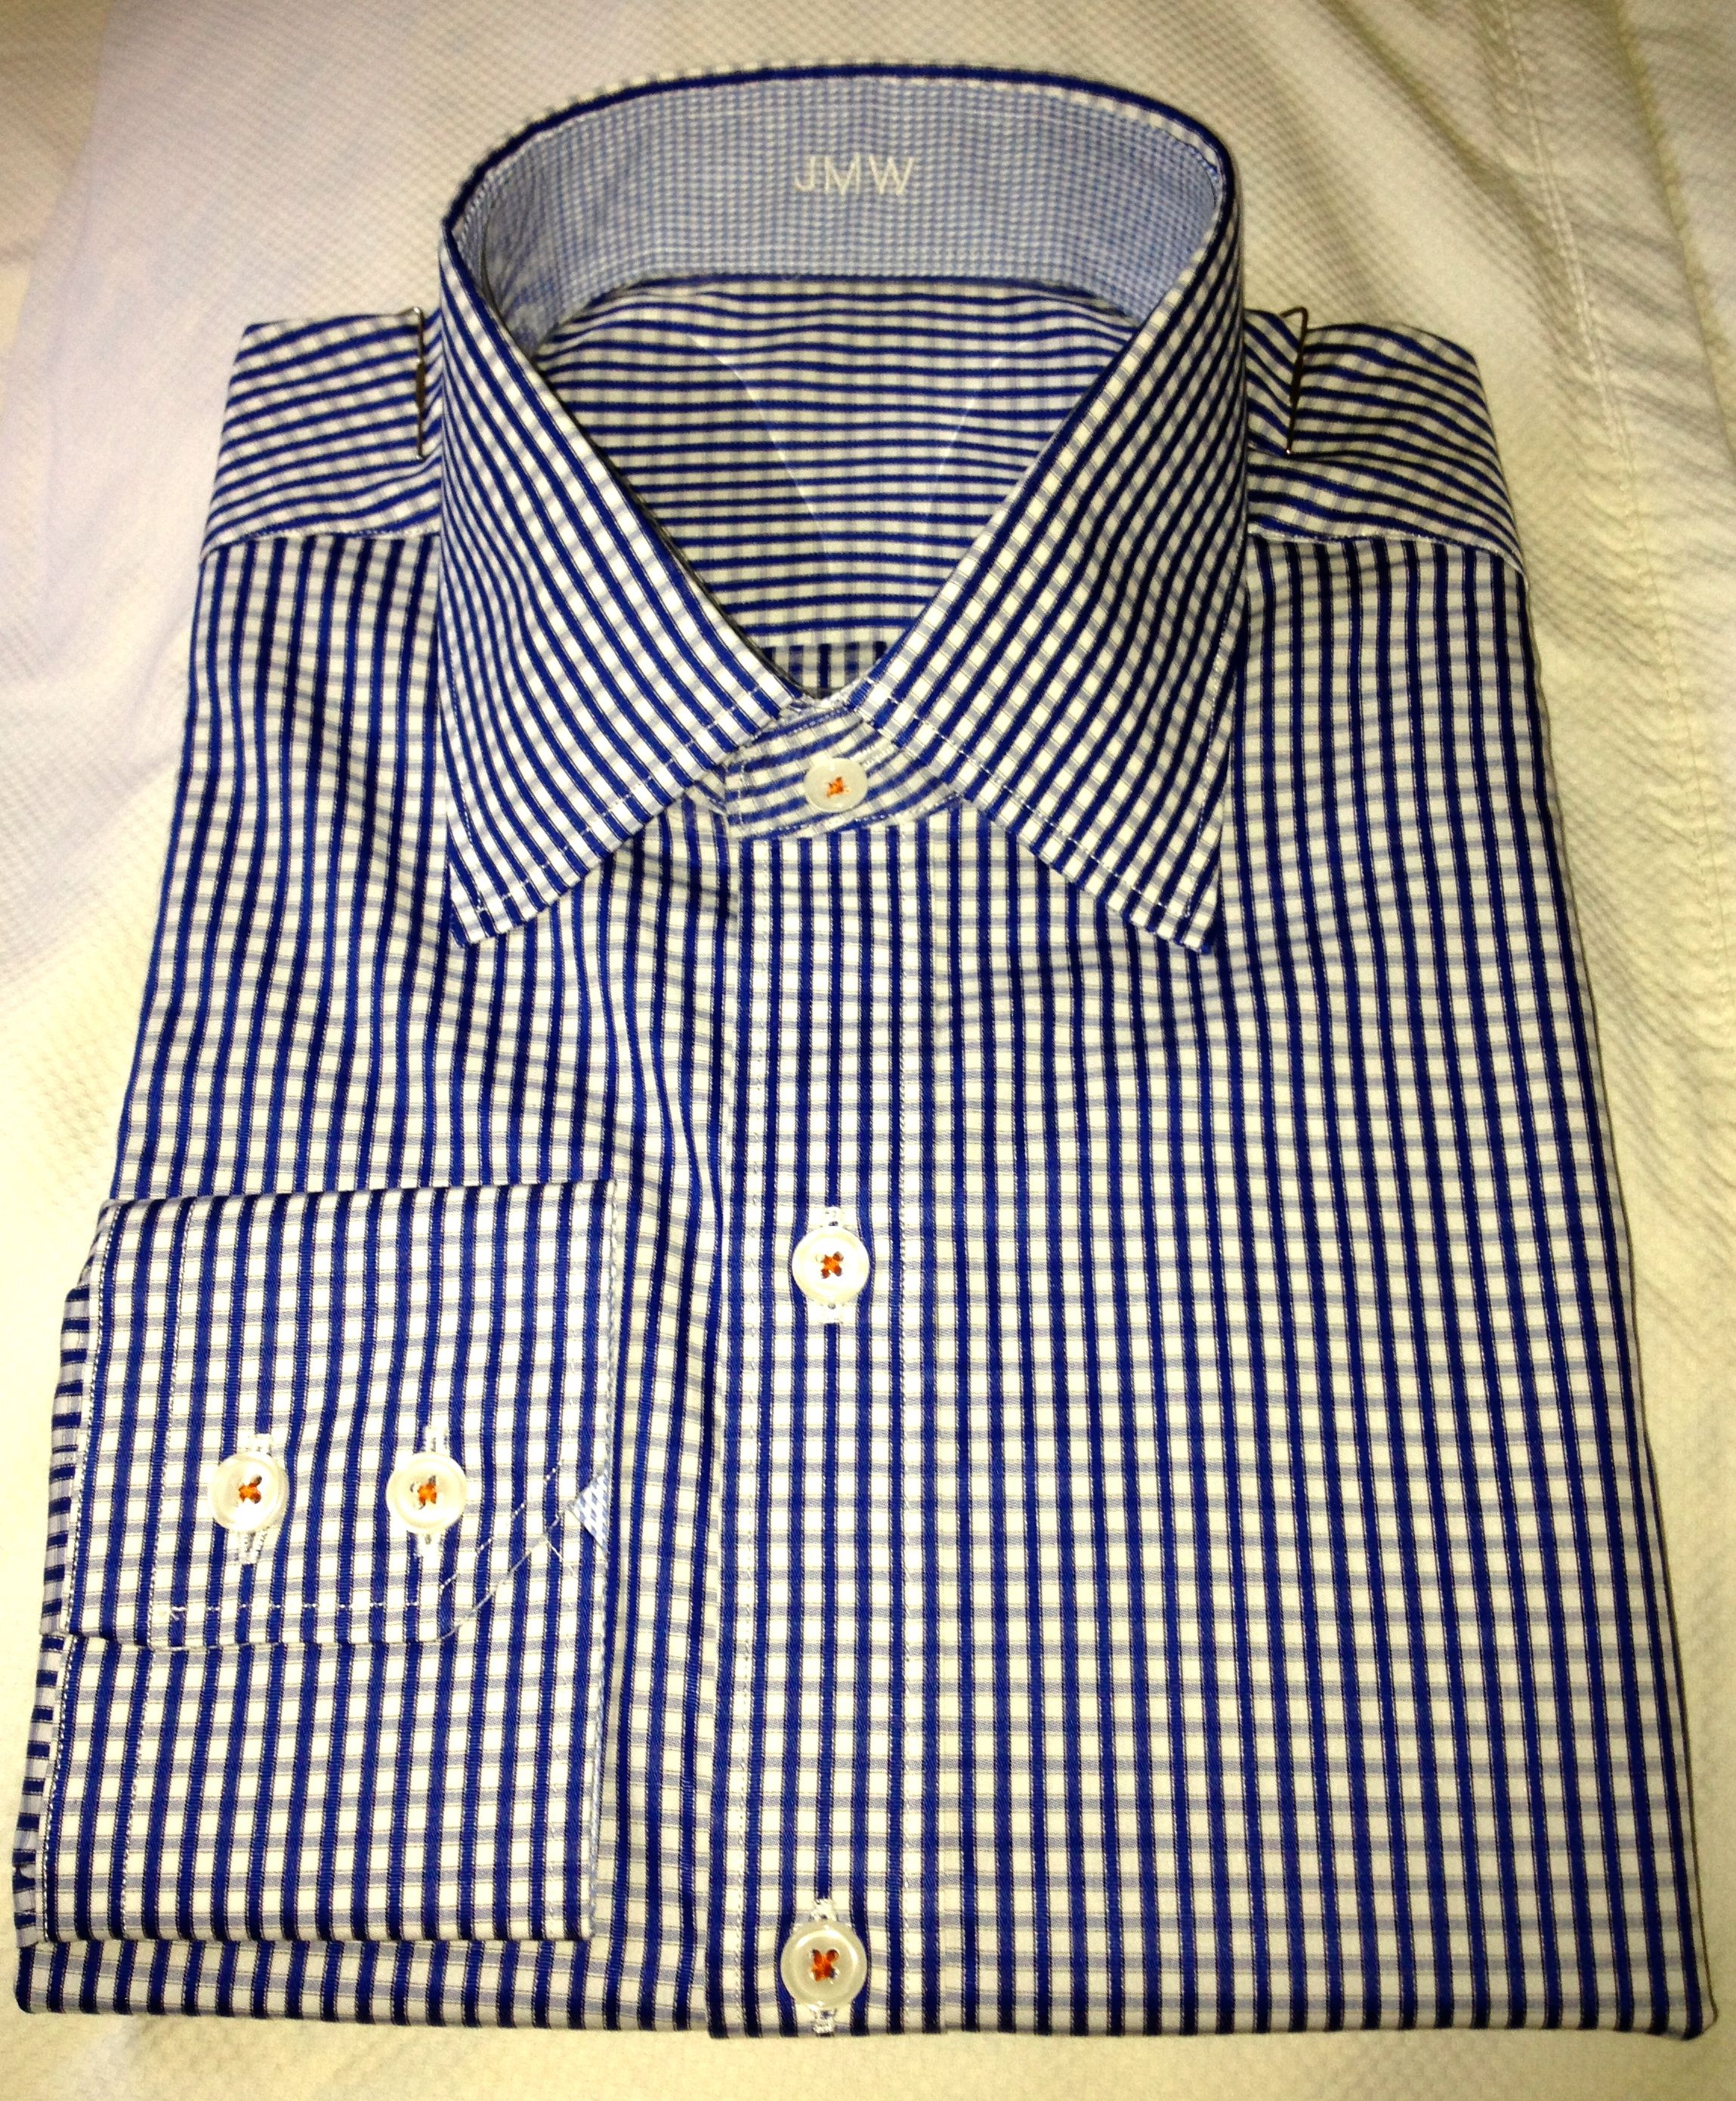 J. Hilburn Custom Shirt - White/Royal Twin Dobby Check with Contrast Stitching in Orange.